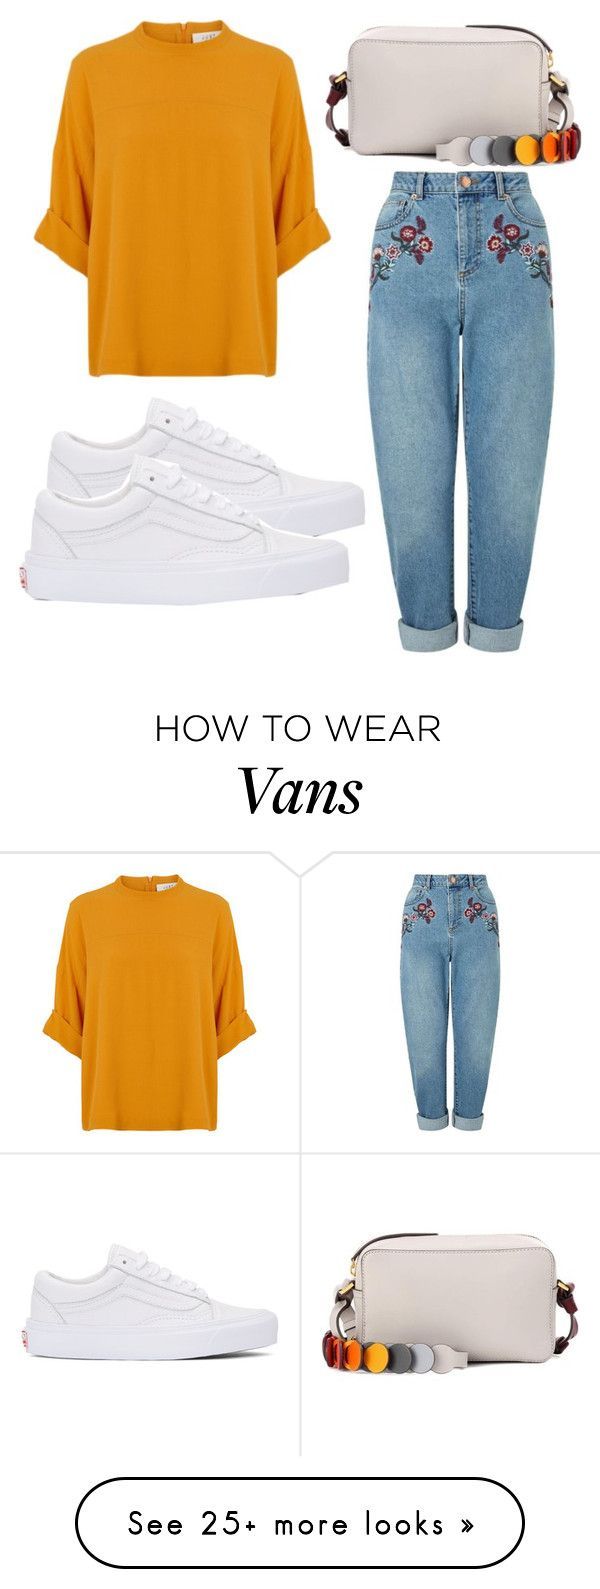 """Untitled #4121"" by evalentina92 on Polyvore featuring Miss Selfridge, Vans and Anya Hindmarch"